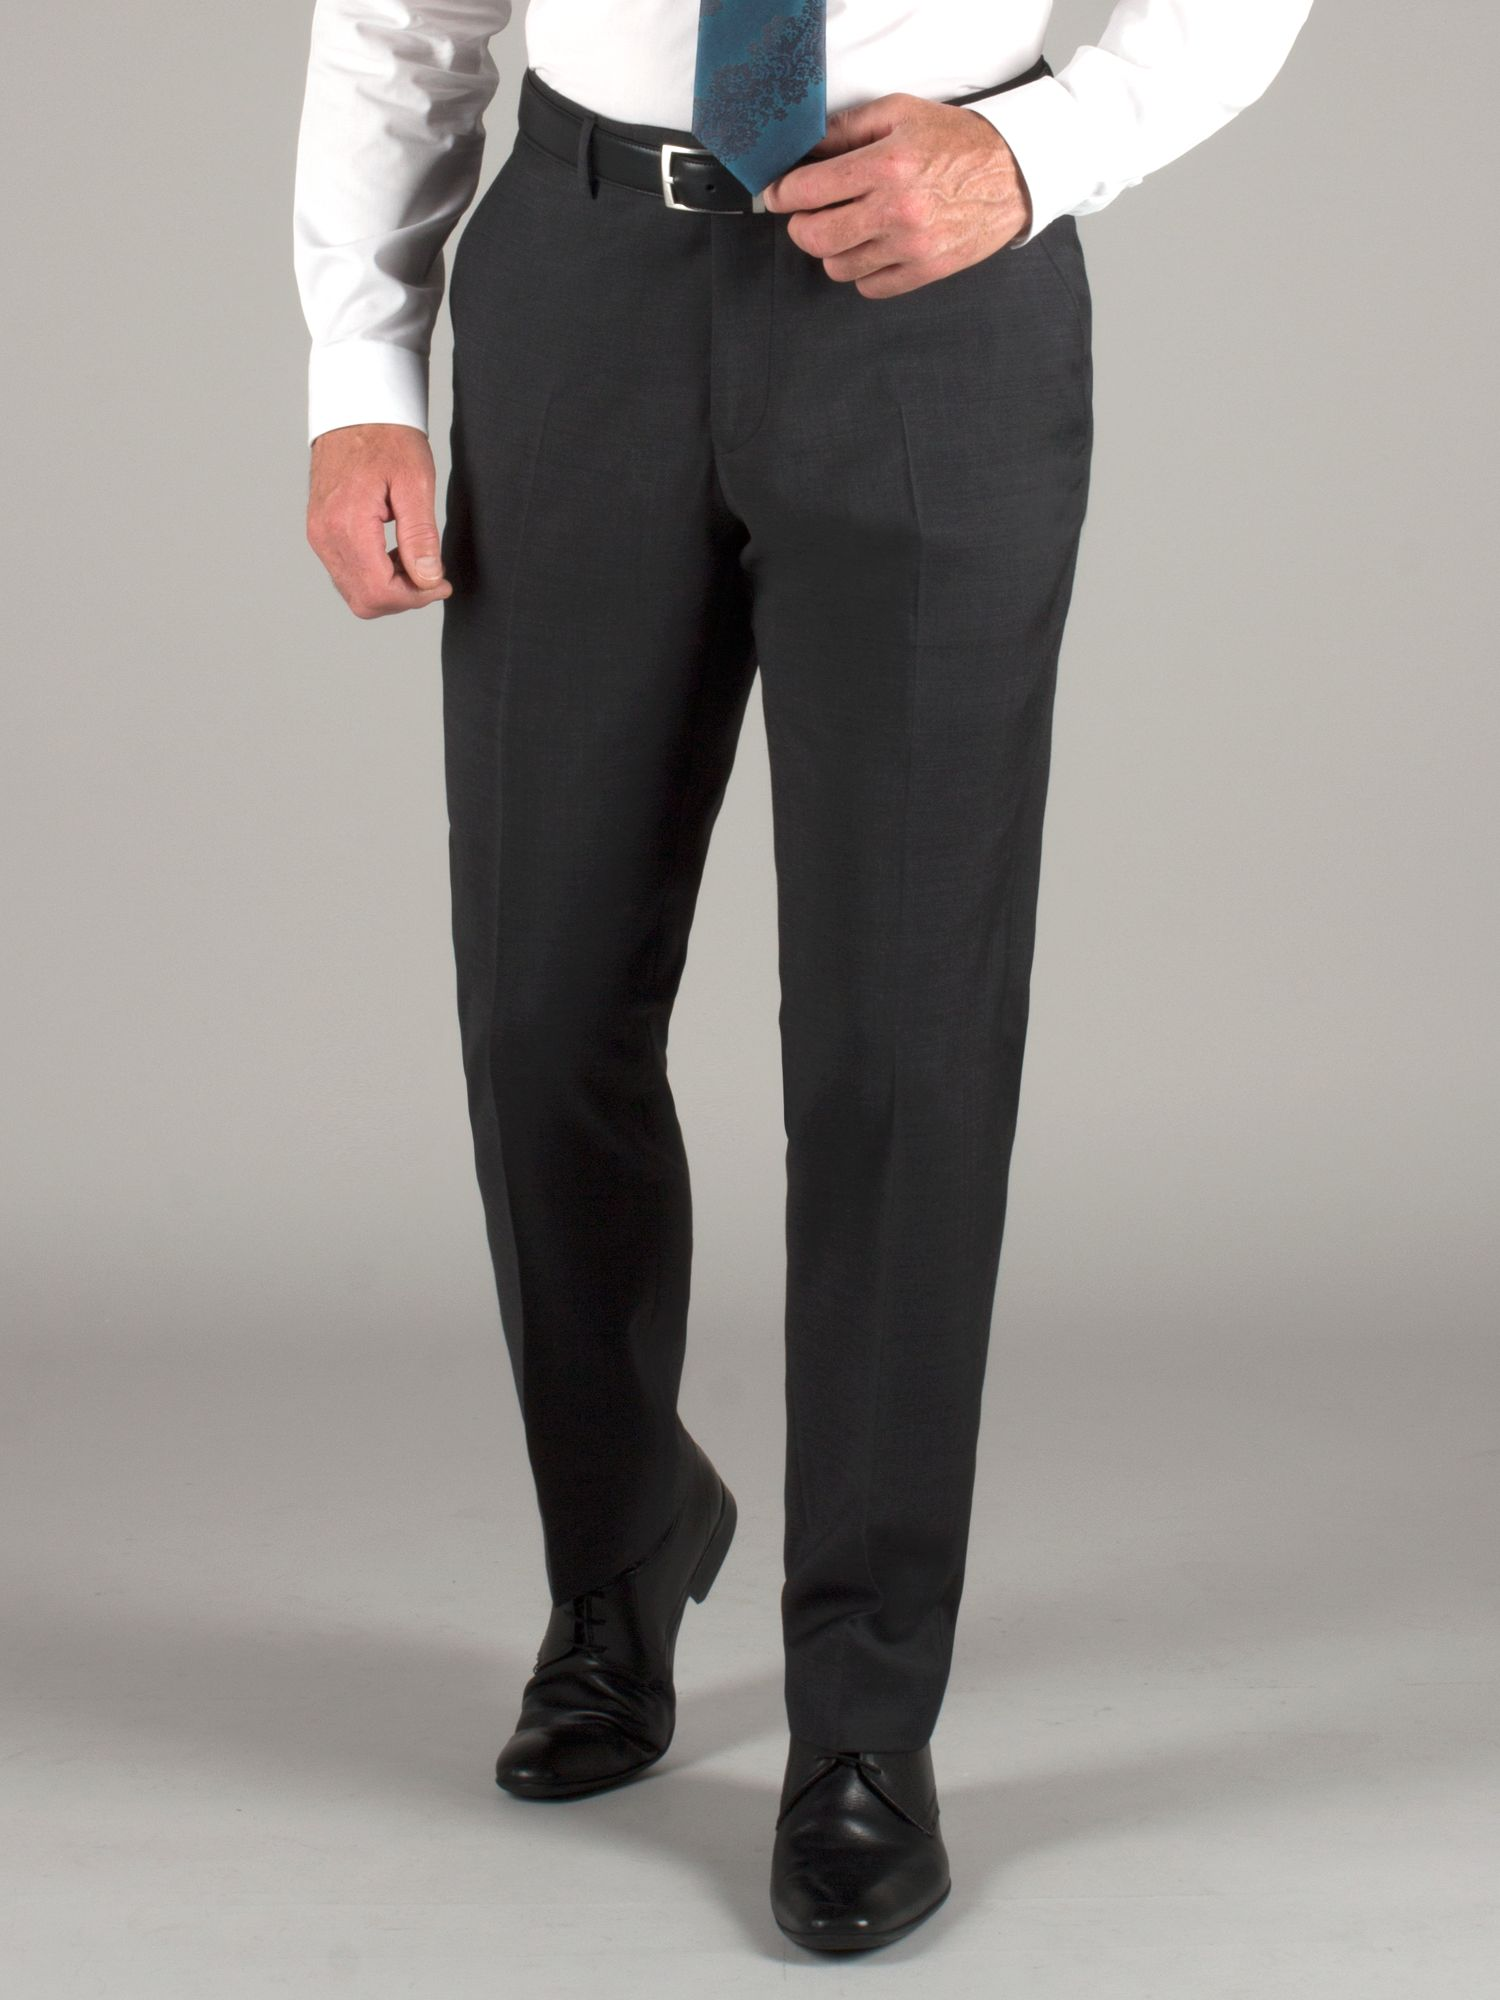 Plain charcoal wool trouser